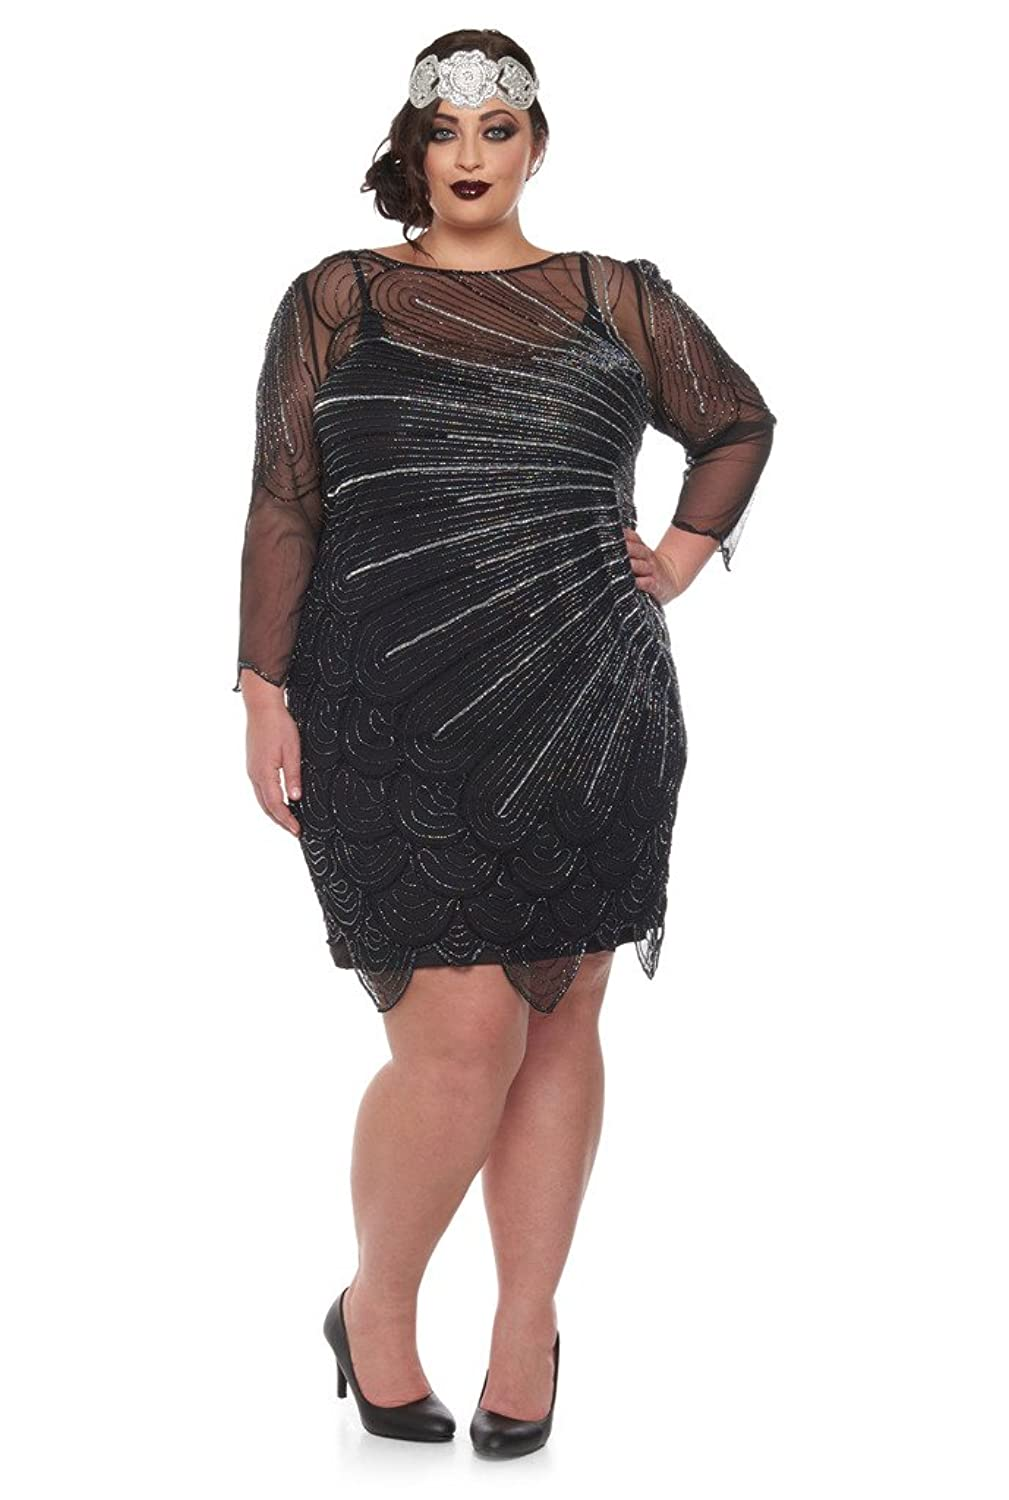 1920s Evening Dresses & Formal Gowns Catherine Vintage Inspired Flapper Dress in Black Silver $105.22 AT vintagedancer.com